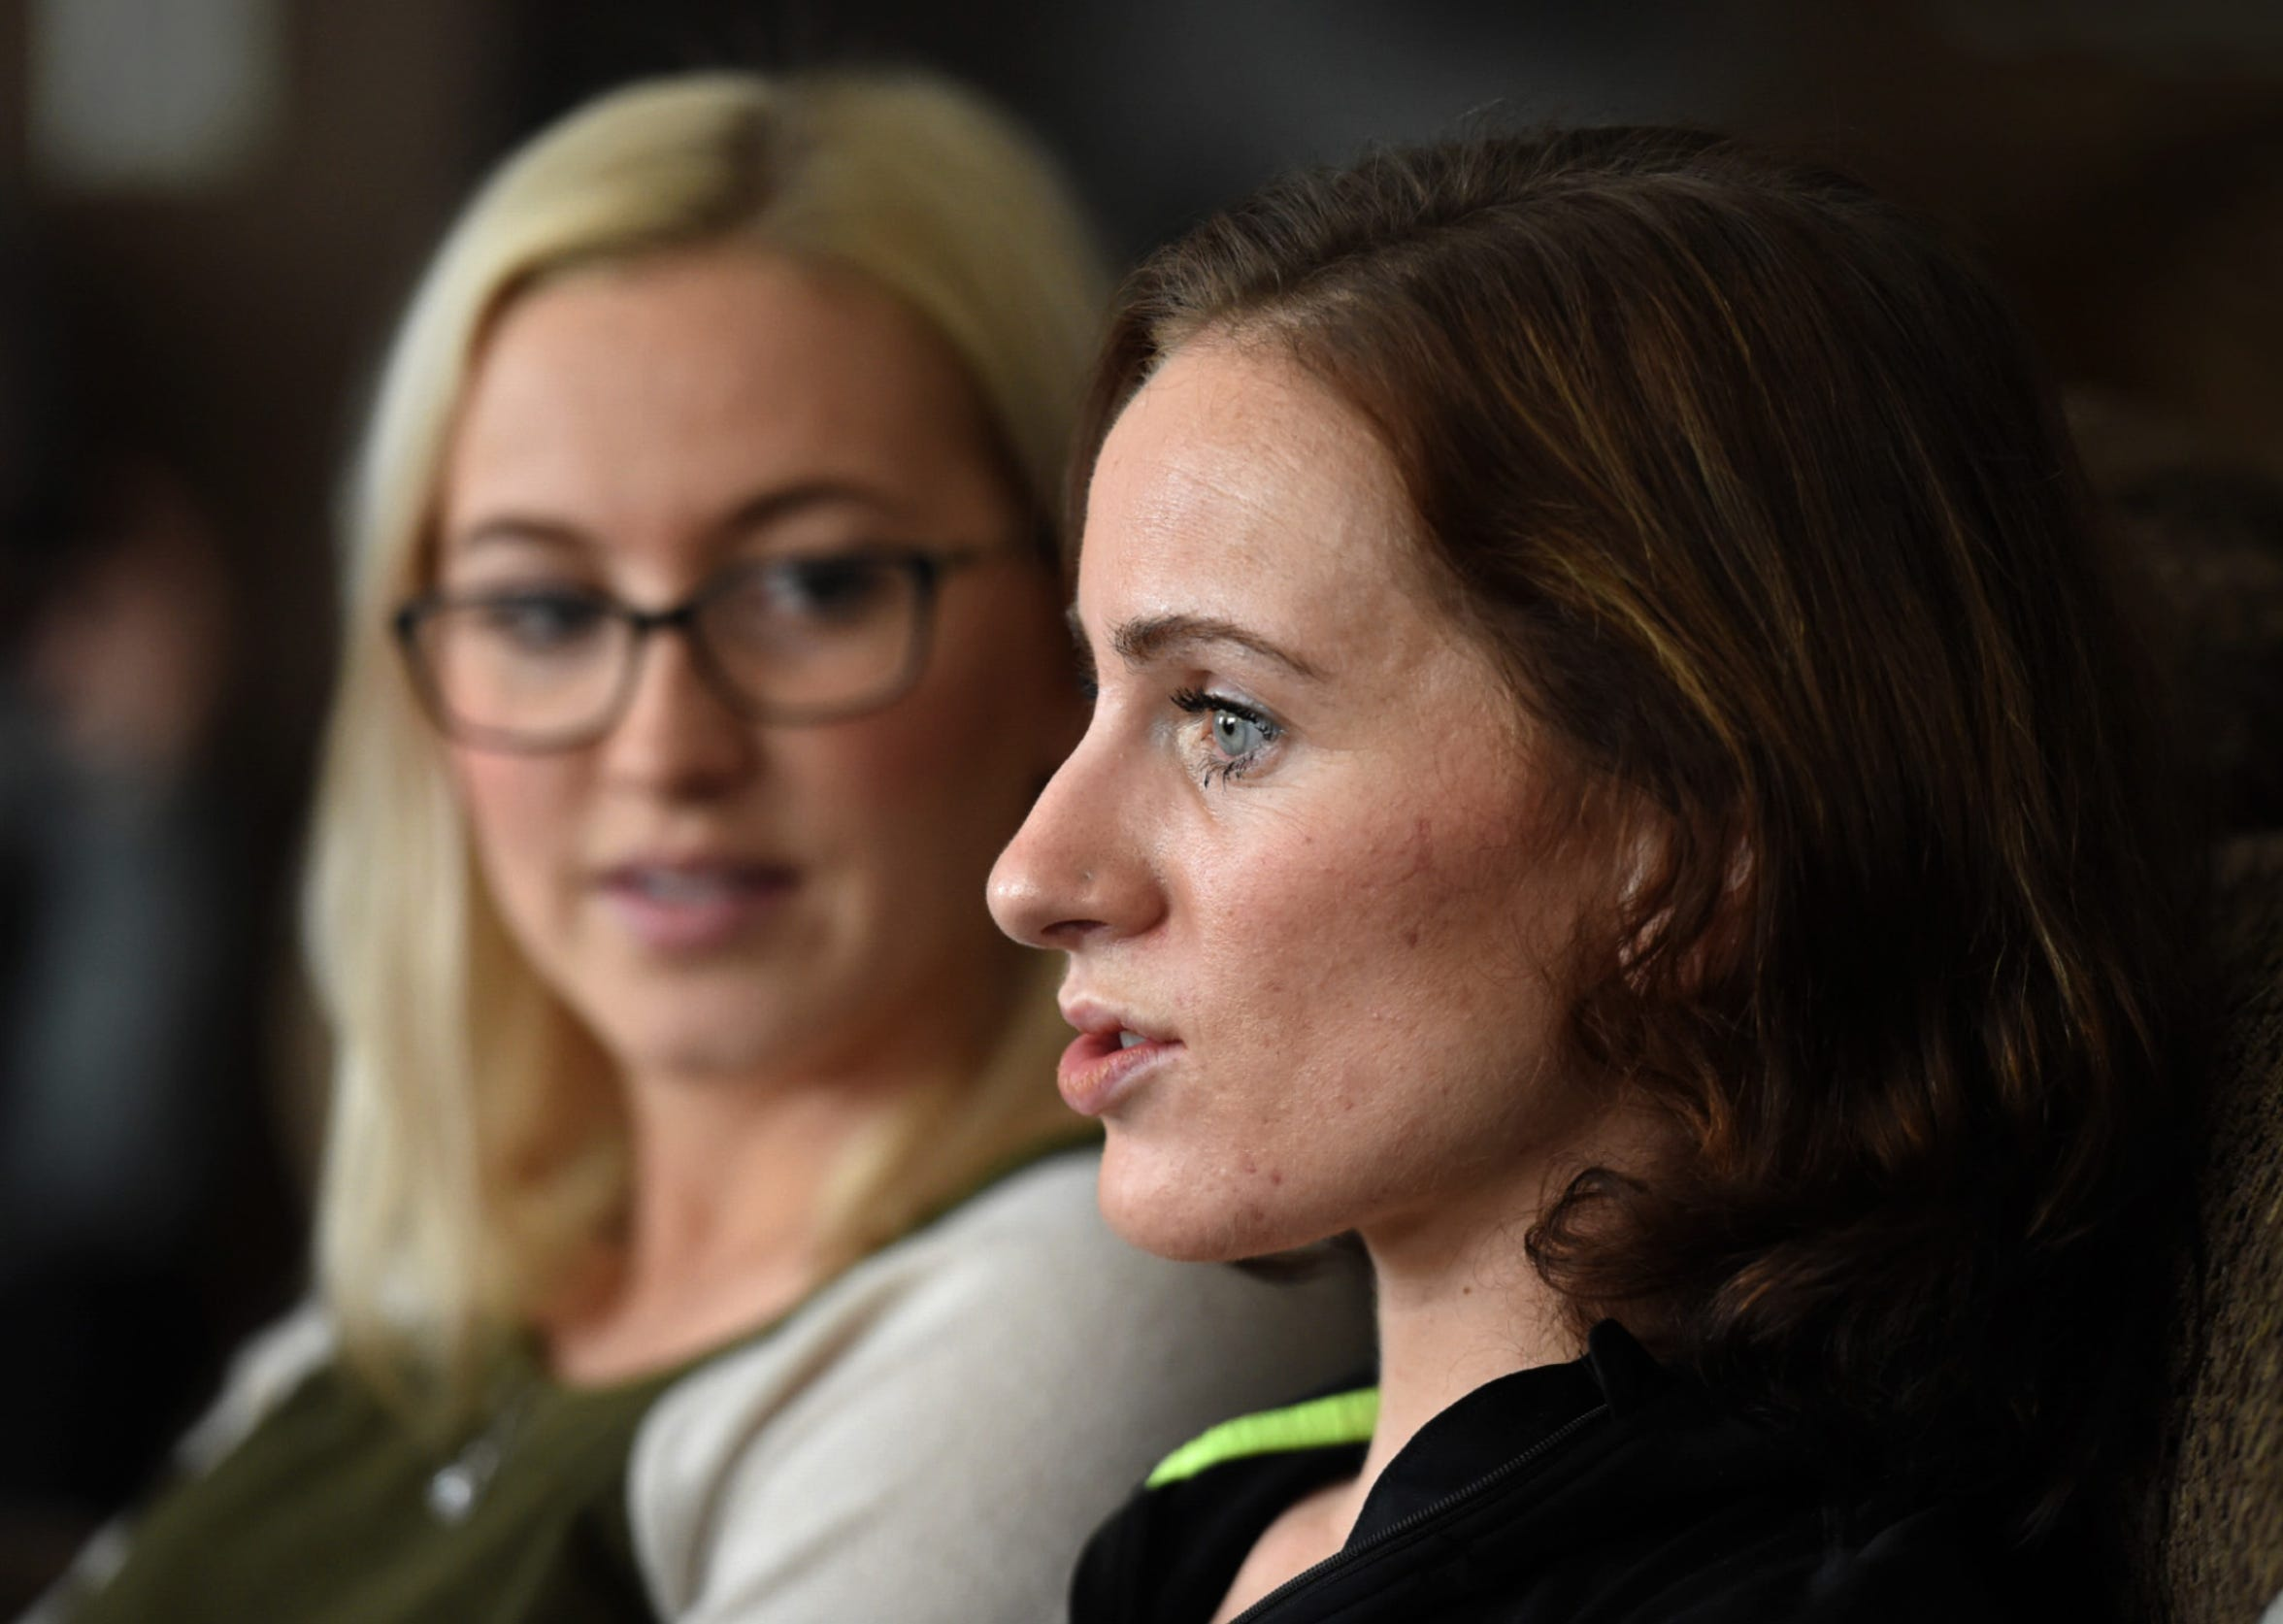 Kelly Cass, right, talks about the accident, her recovery and outlook as she sits next to her sister Kayla Dowty at their mother's Reno home on Feb. 18, 2019. Cass is recovering after being hit by a suspected drunk driver as she rode her skateboard near her Citrus Heights, Calif., apartment in December.